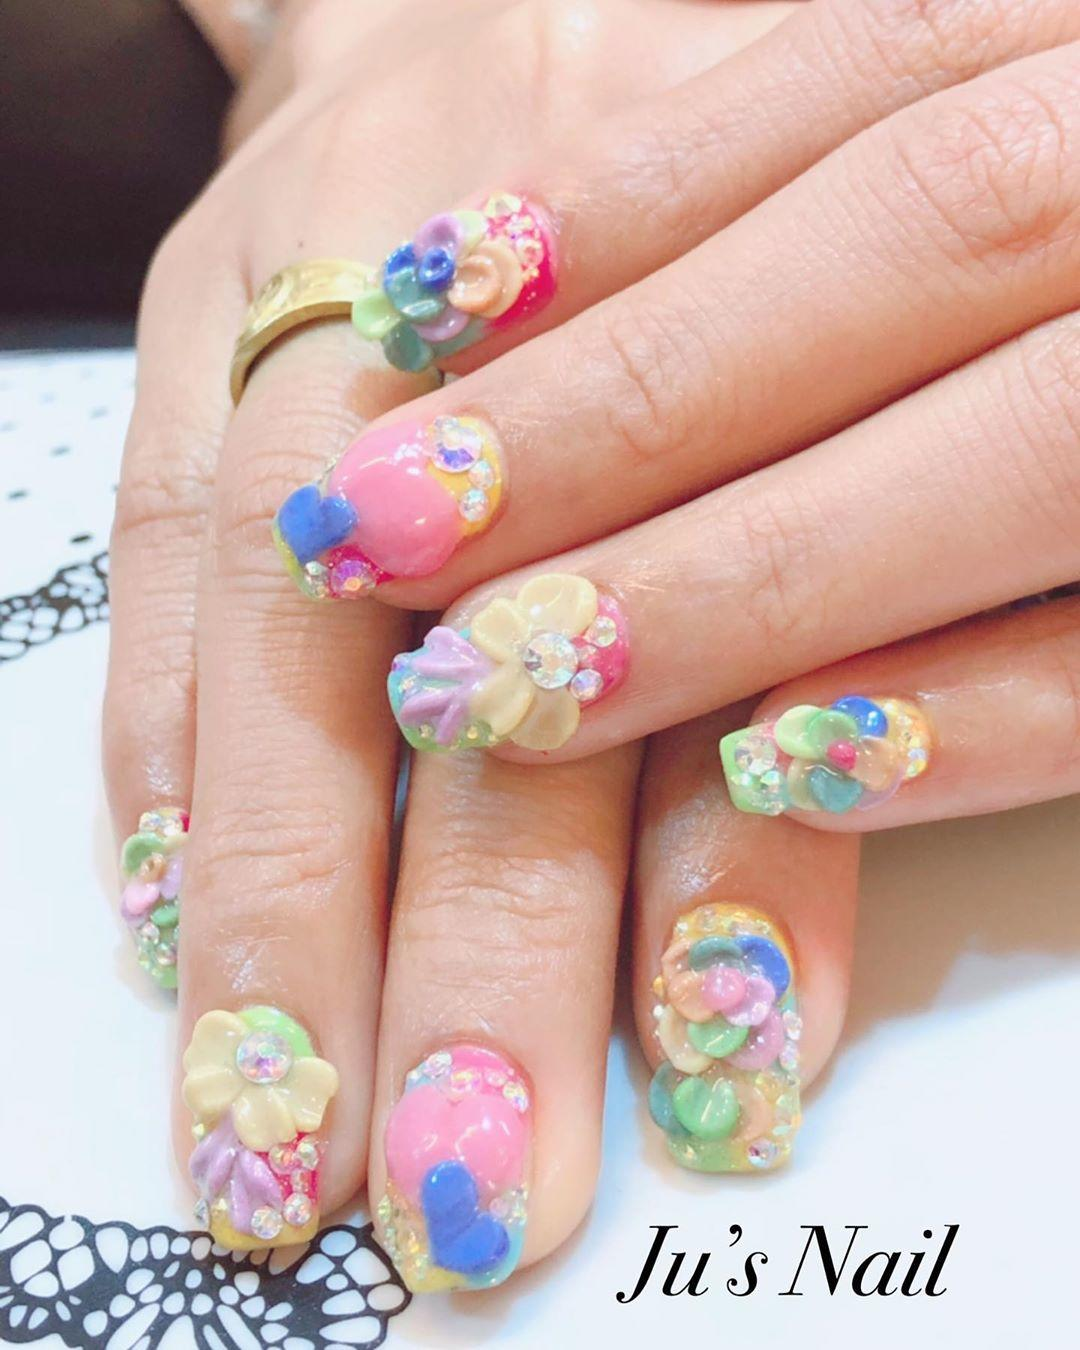 17 must see ideas for acrylic nail designs 2019 8 - 17 Must See Ideas forAcrylic Nail Designs 2019